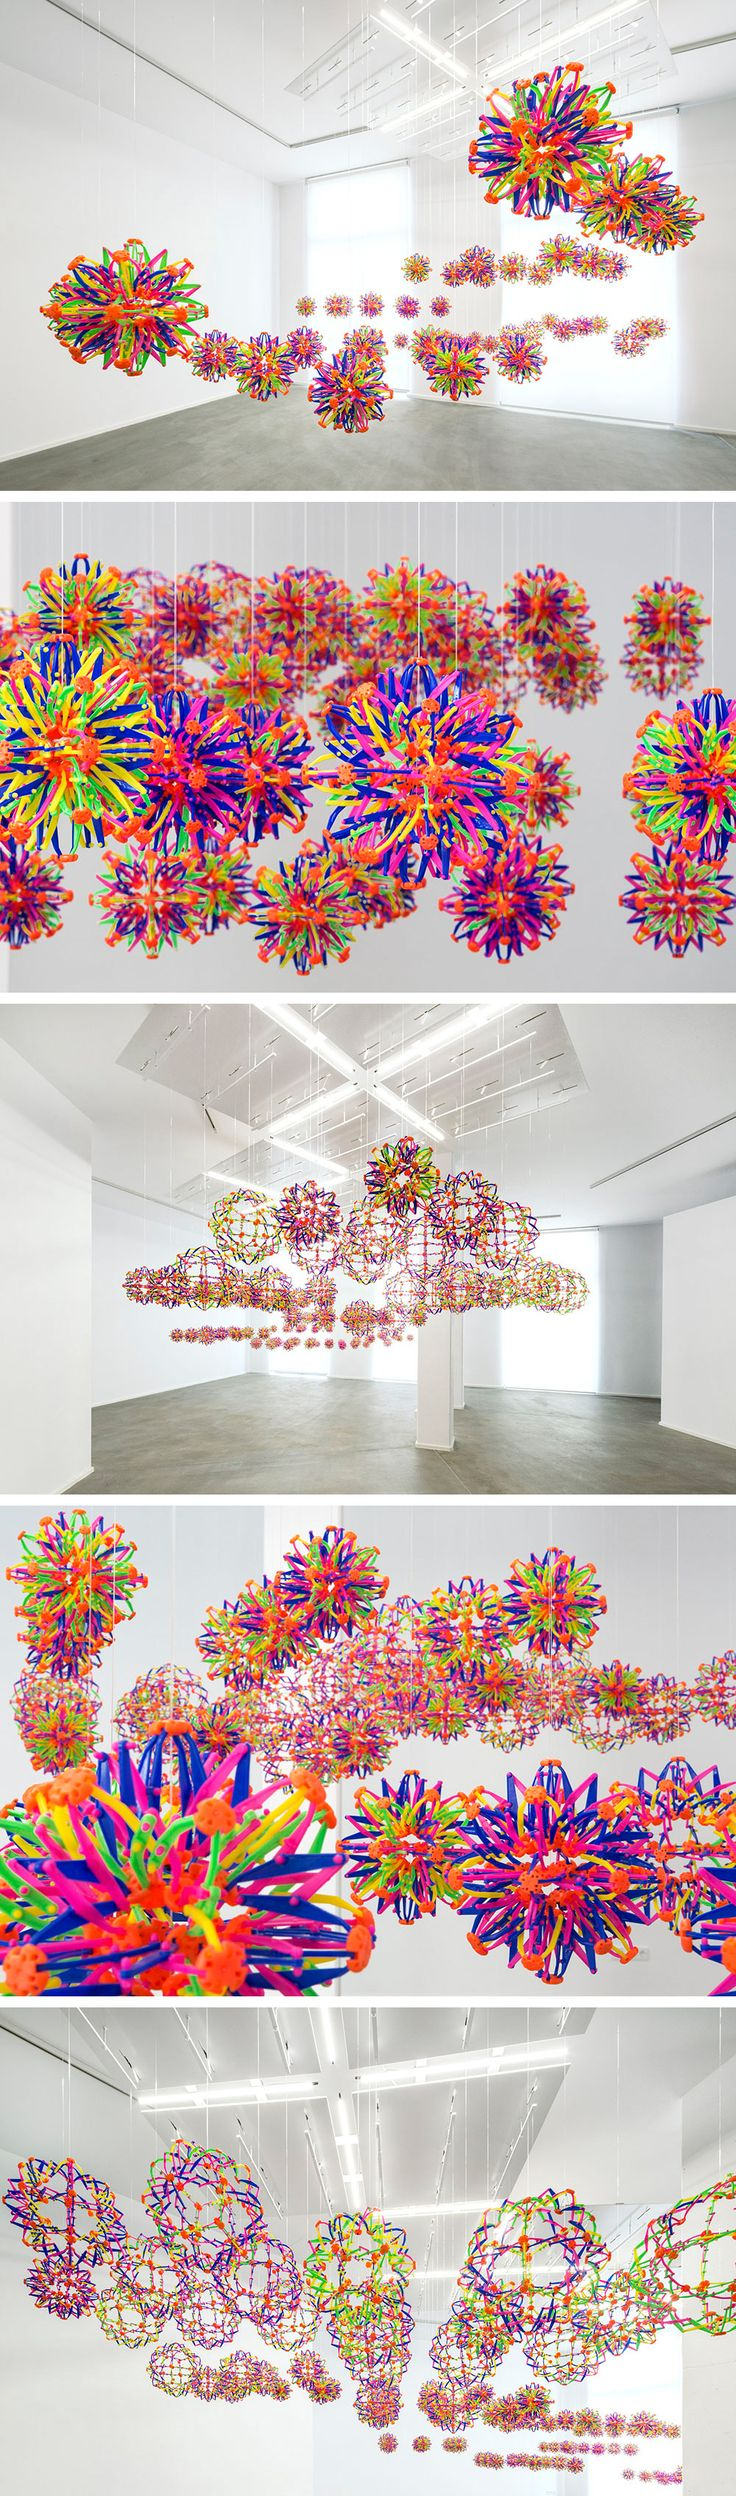 Bits and Pieces: An Expandable Kinetic Toy Sphere Installation by Nils Volker